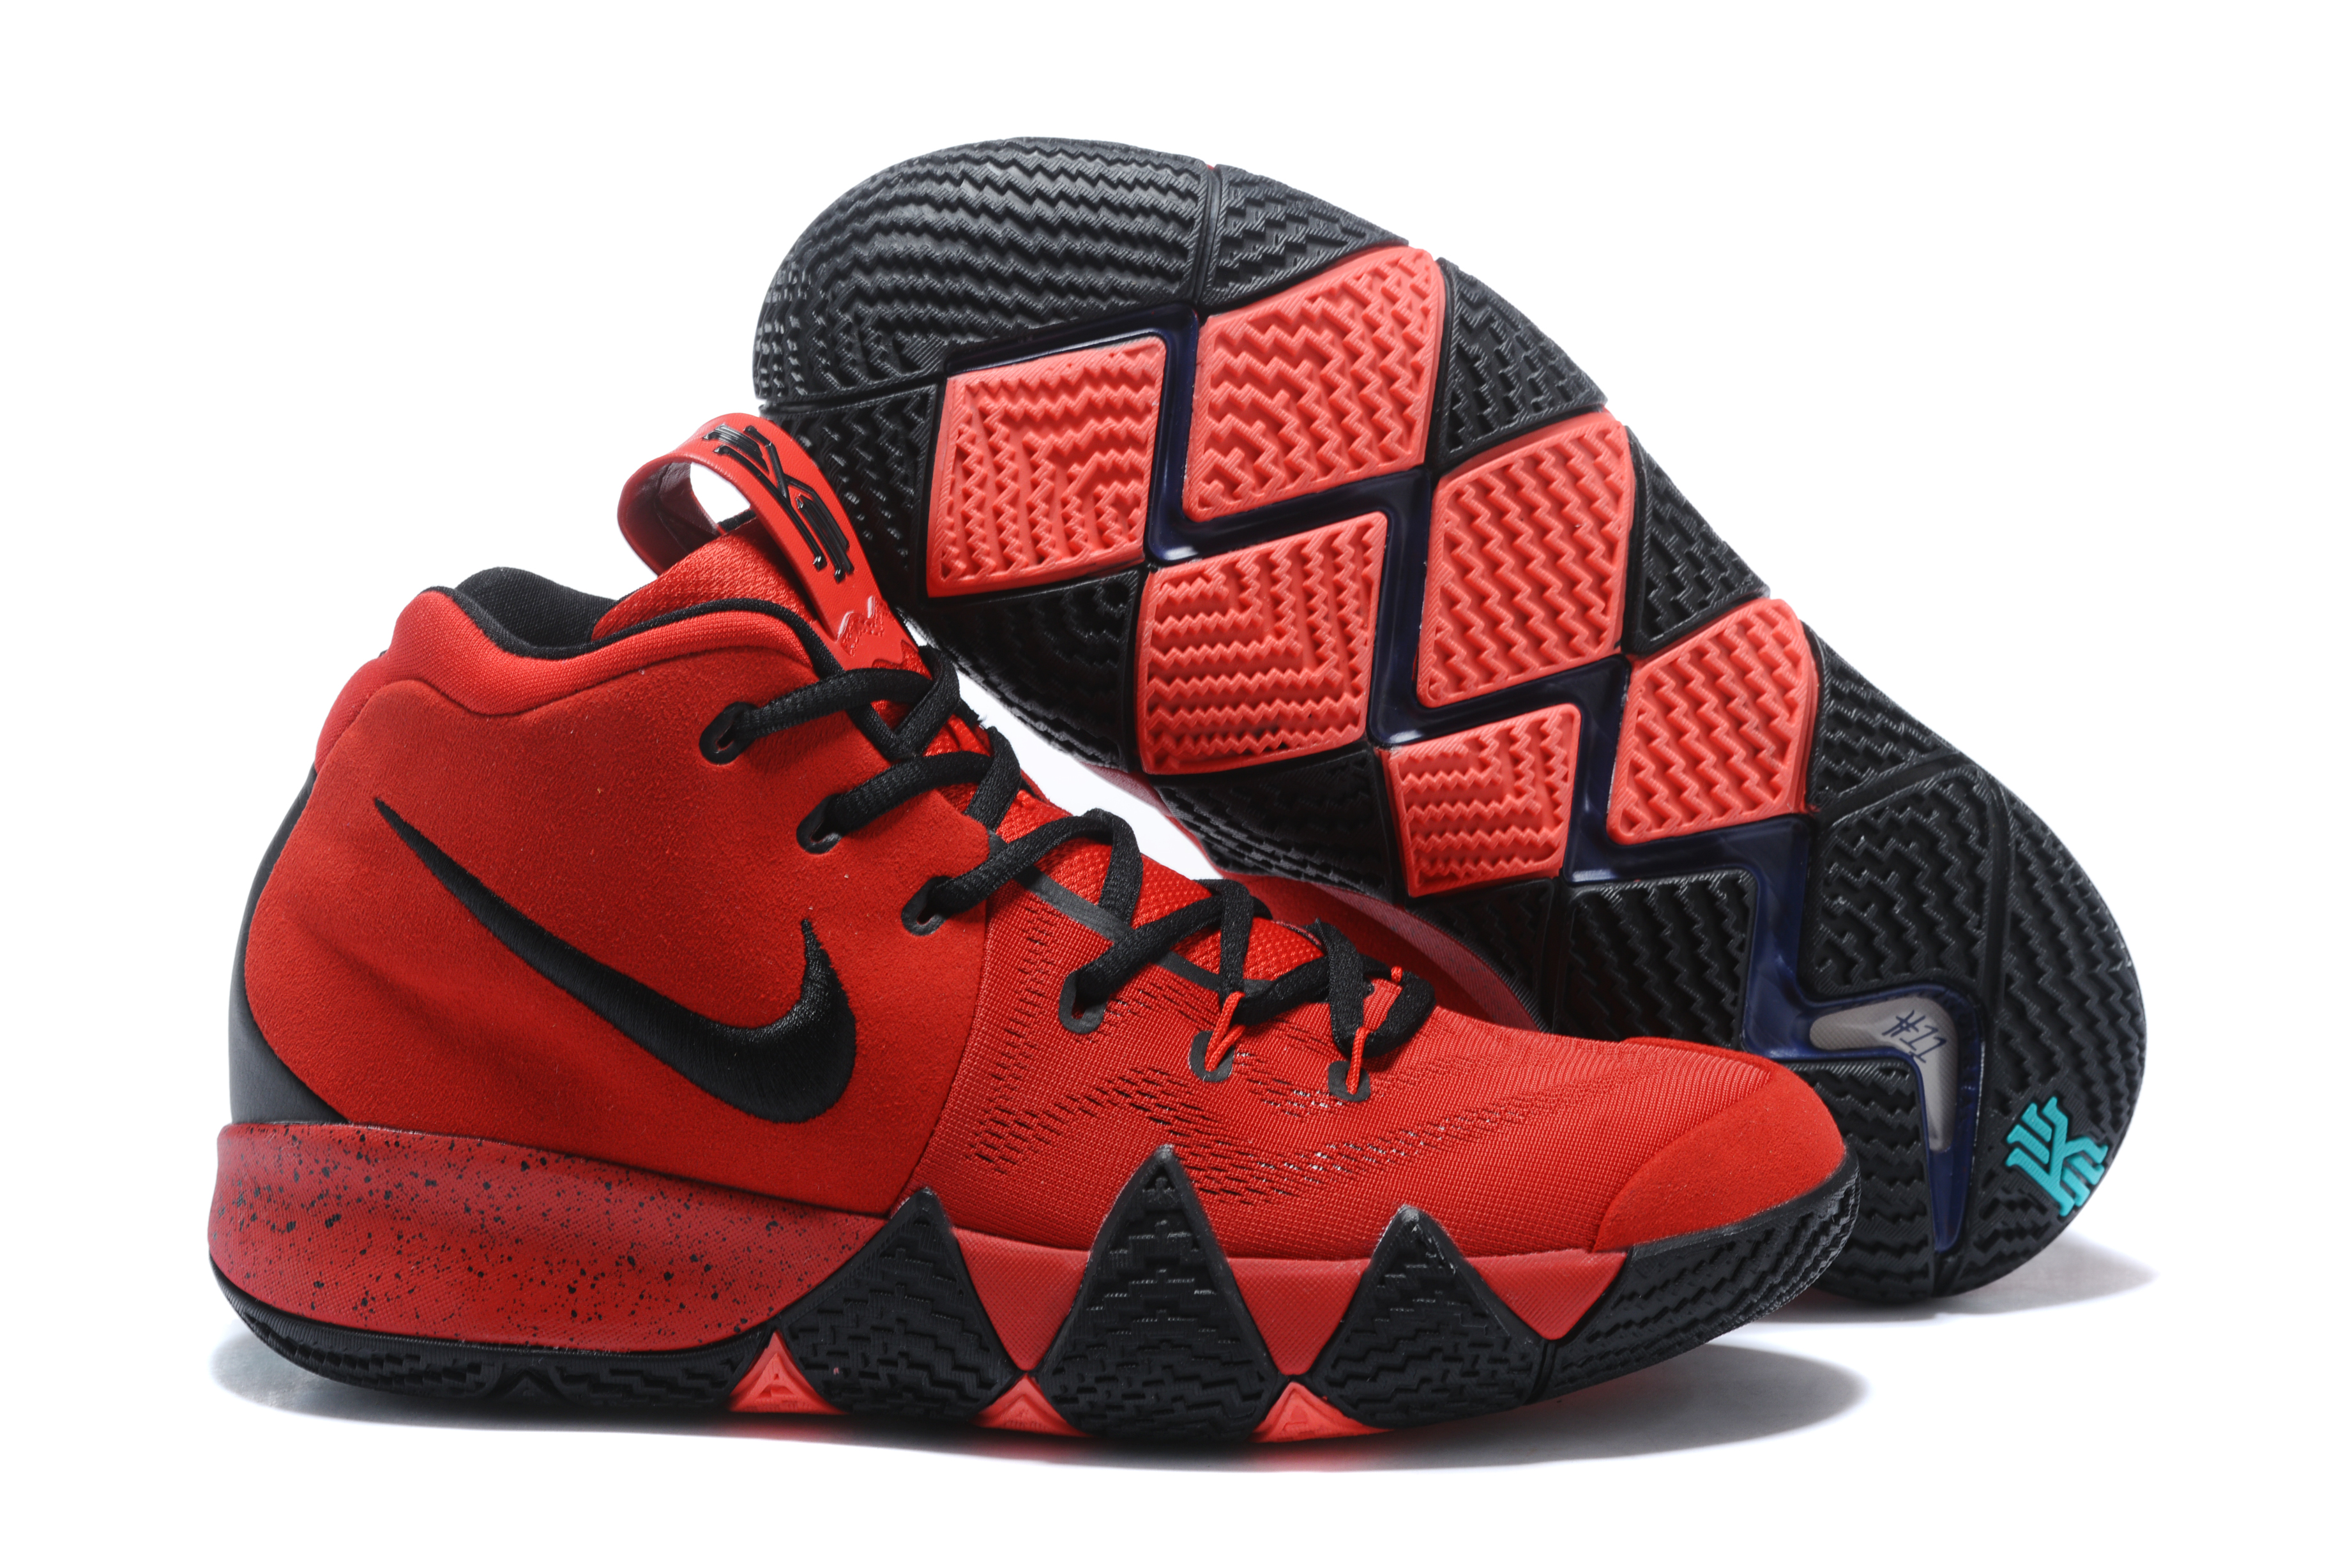 8c5029fa5272 Nike Kyrie 4 Red Black Outlet